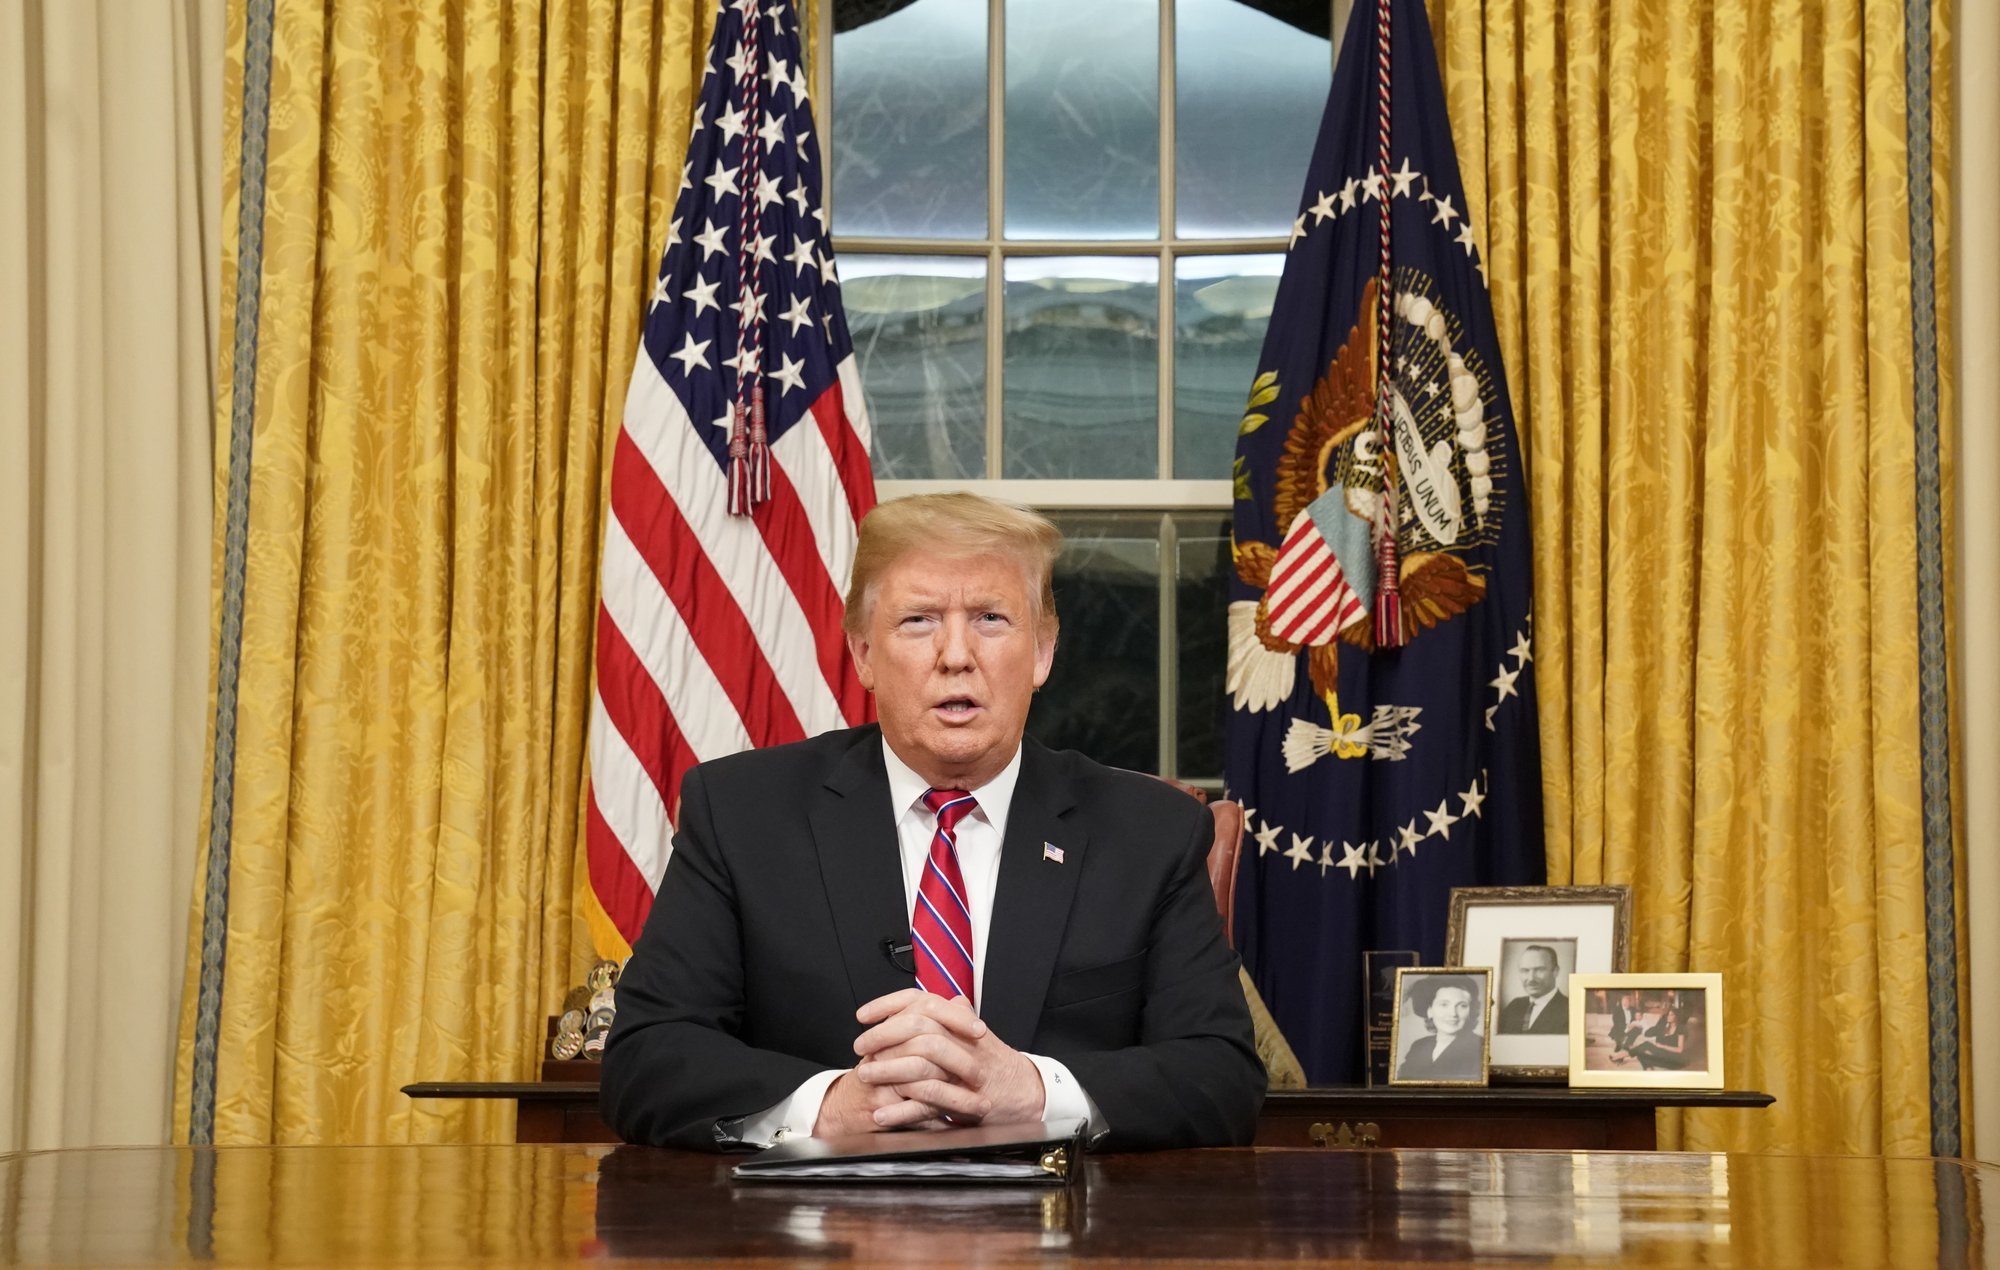 Trump pleads on TV for wall money; Dems say he 'stokes fear'